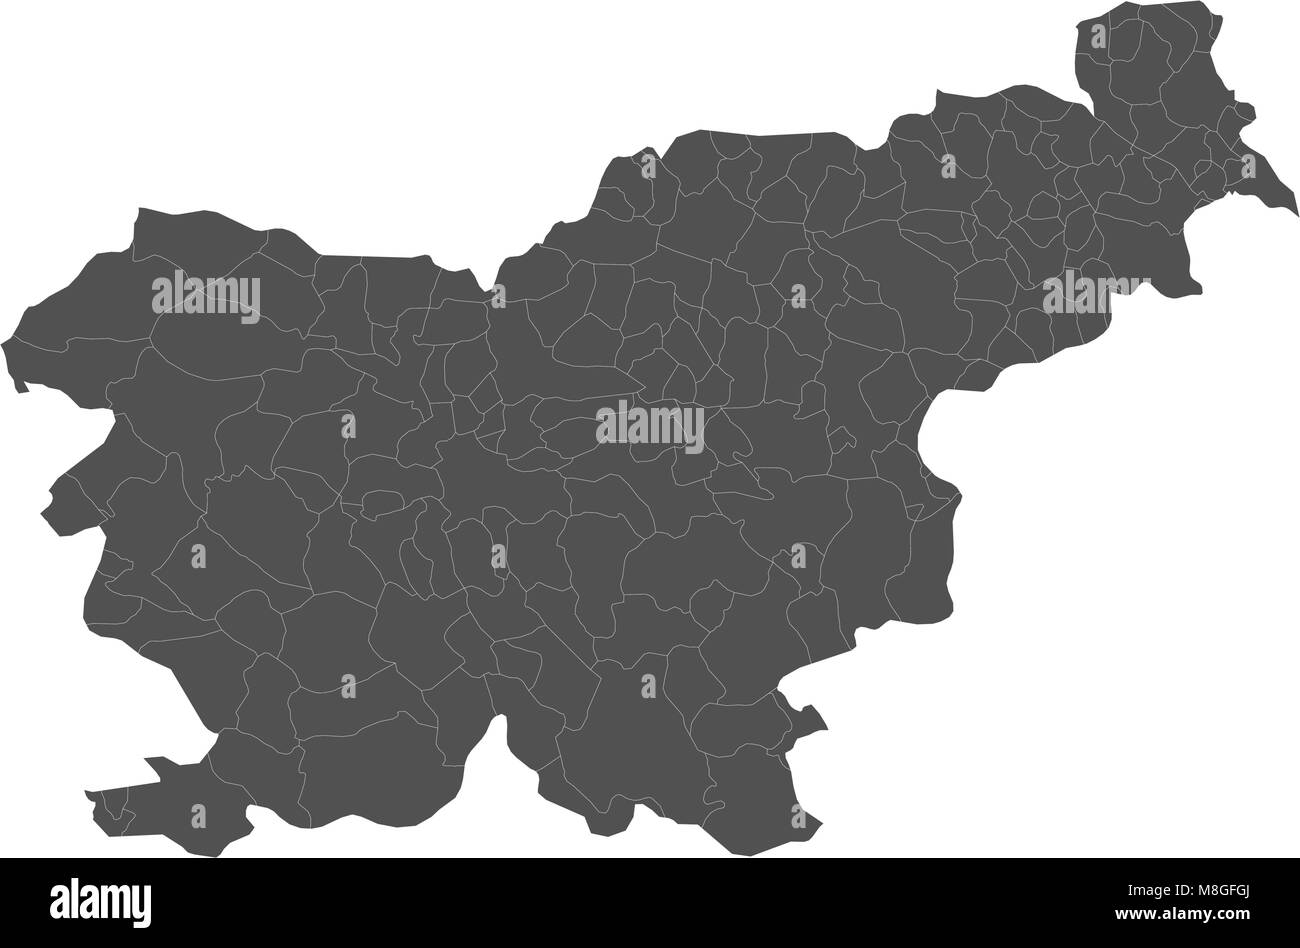 Vectors map cut out stock images pictures page 8 alamy map of slovenia split into regions stock image publicscrutiny Choice Image